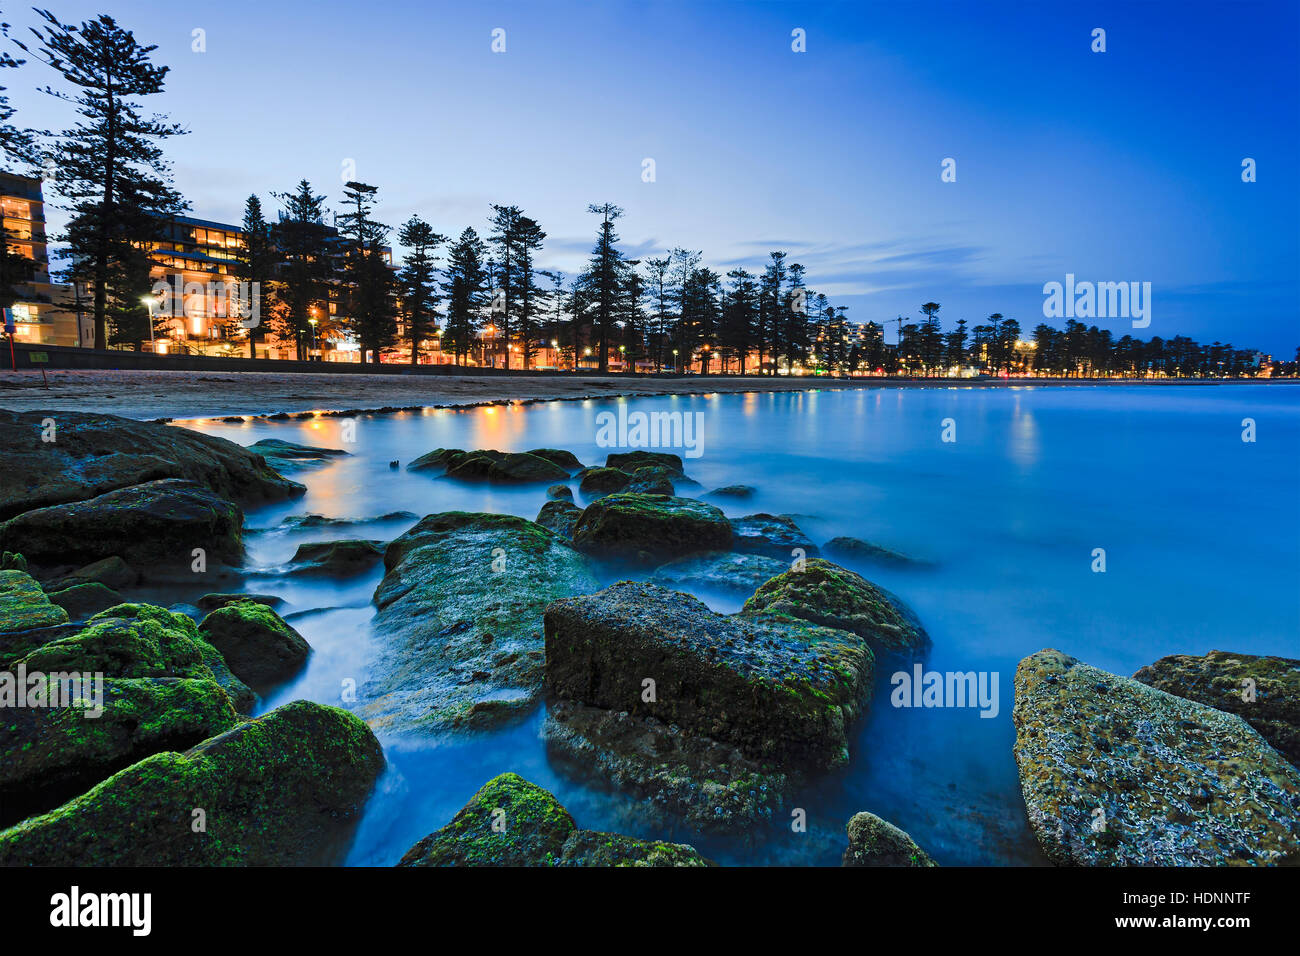 Buy Plants Sydney Green Water Plants Covered Boulders At Sydney Northern